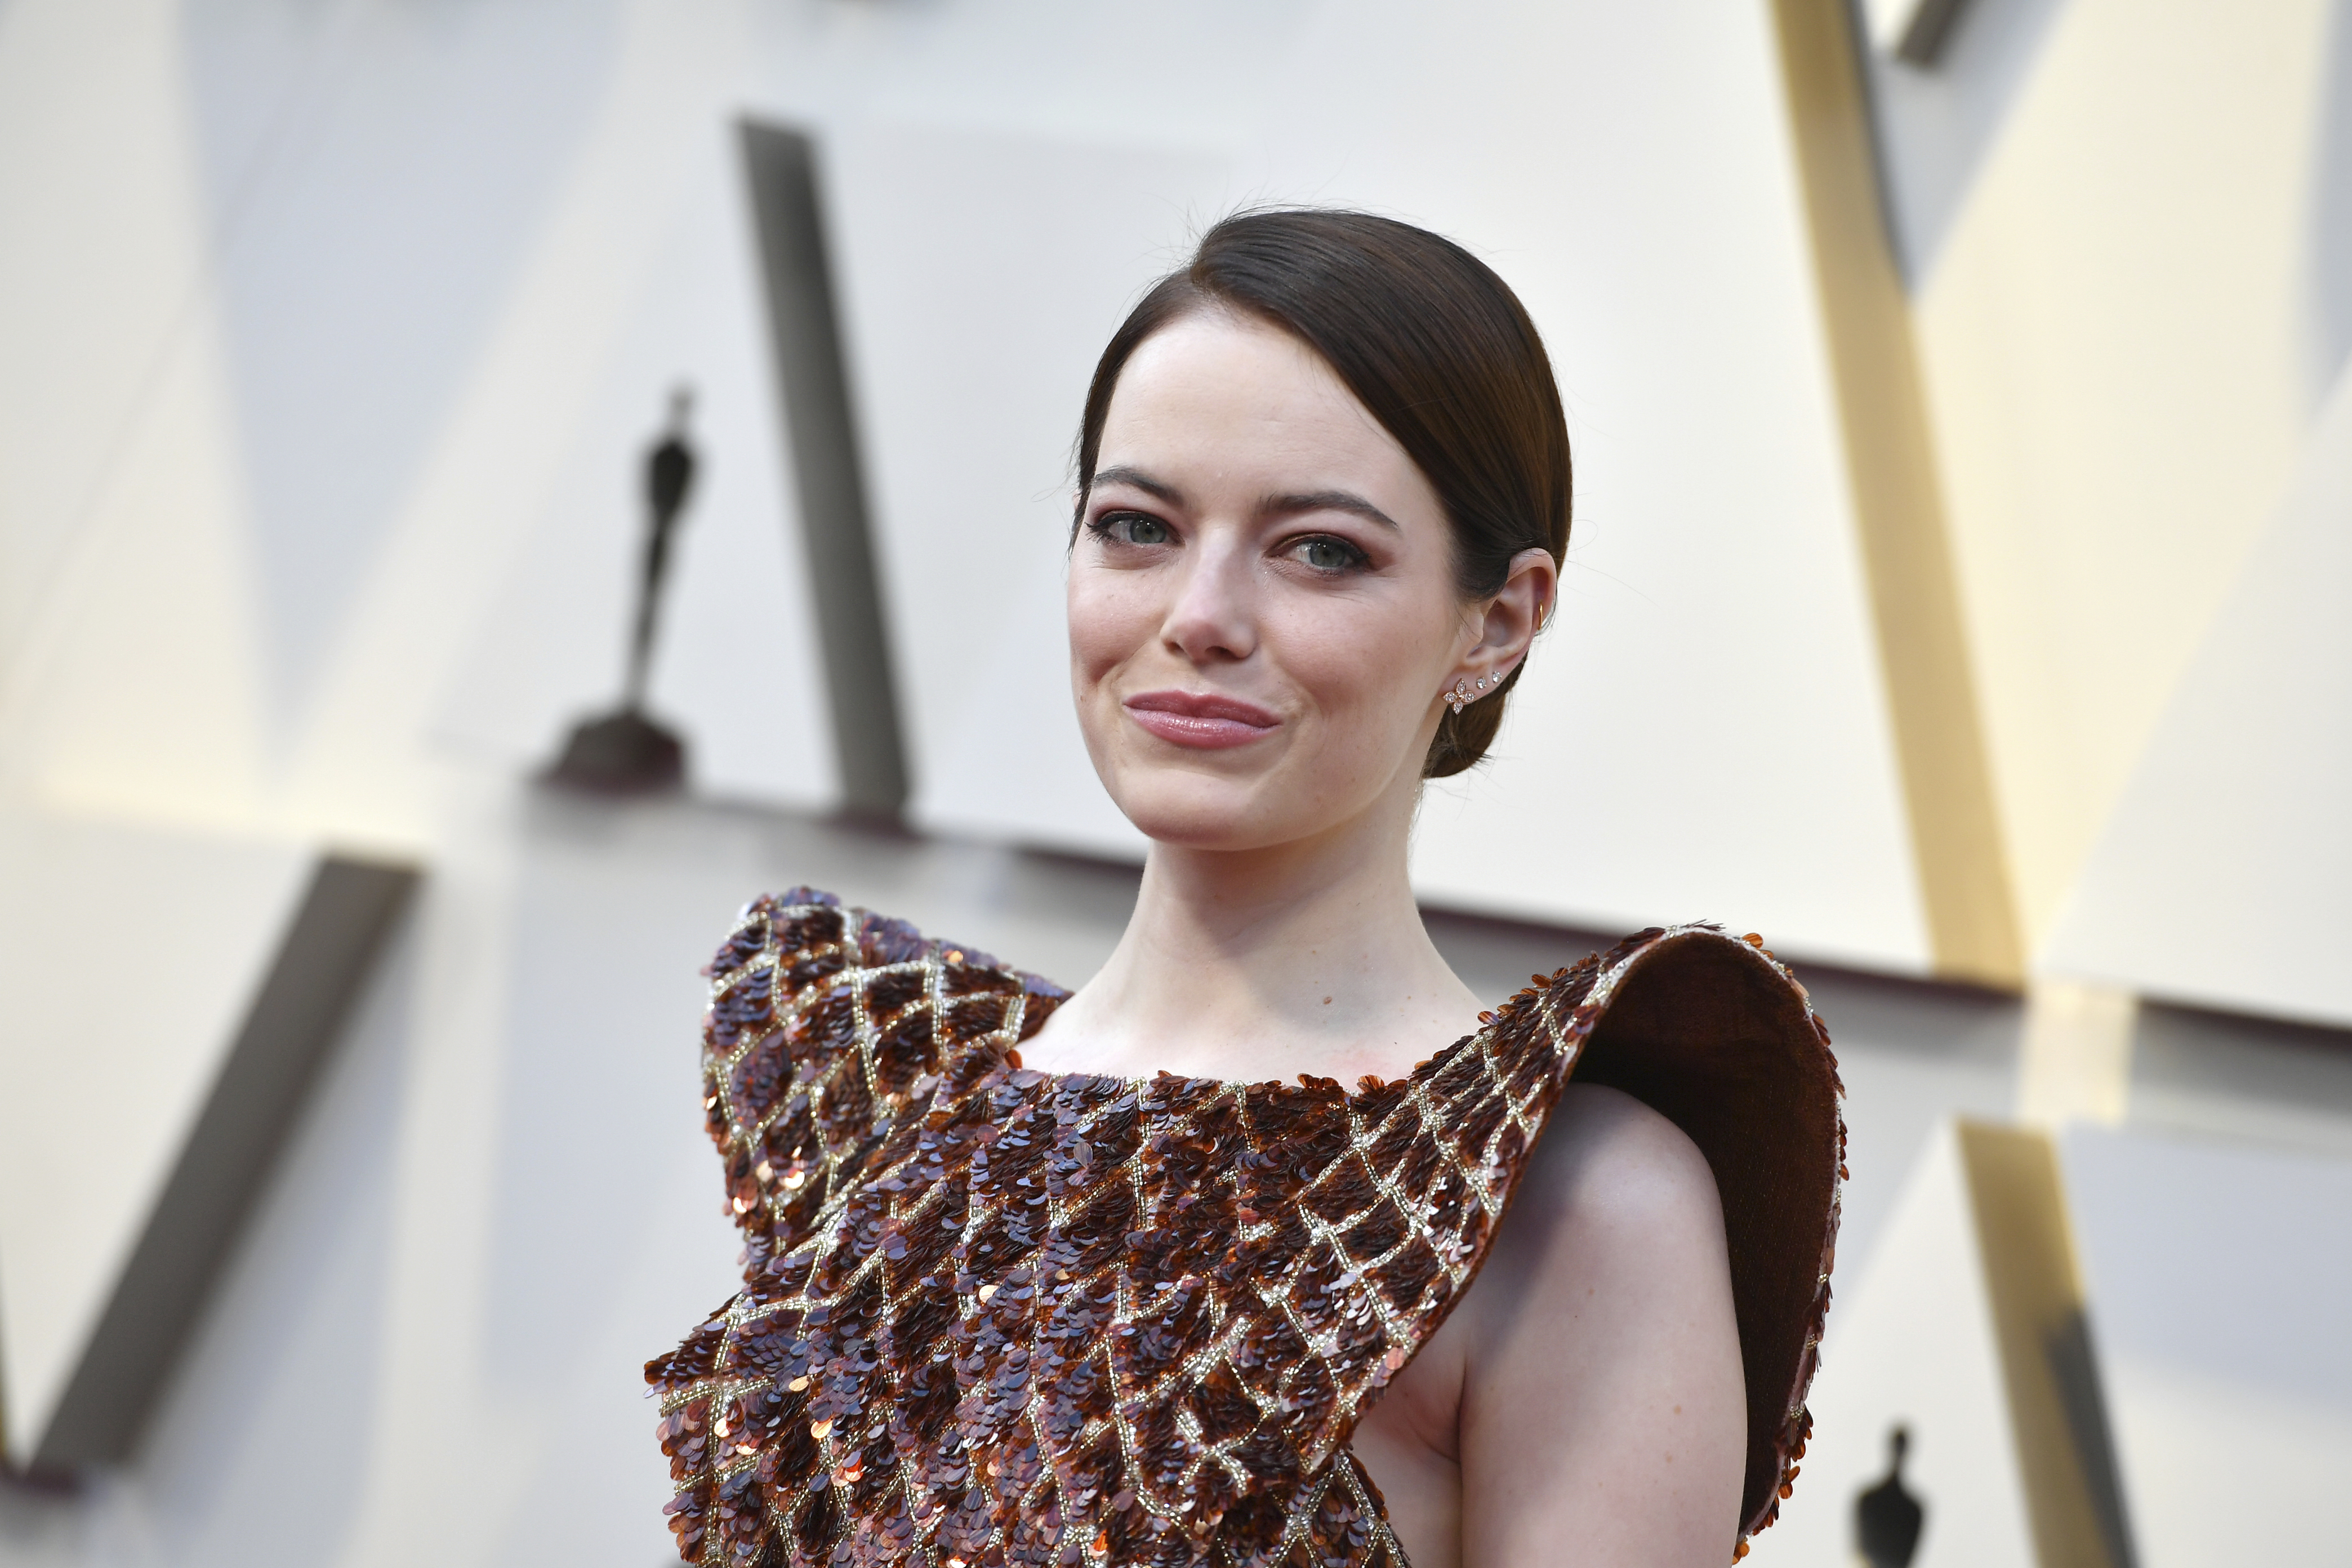 Emma Stone arrives at the Oscars on Sunday, Feb. 24, 2019, at the Dolby Theatre in Los Angeles. (Photo by Jordan Strauss/Invision/AP)